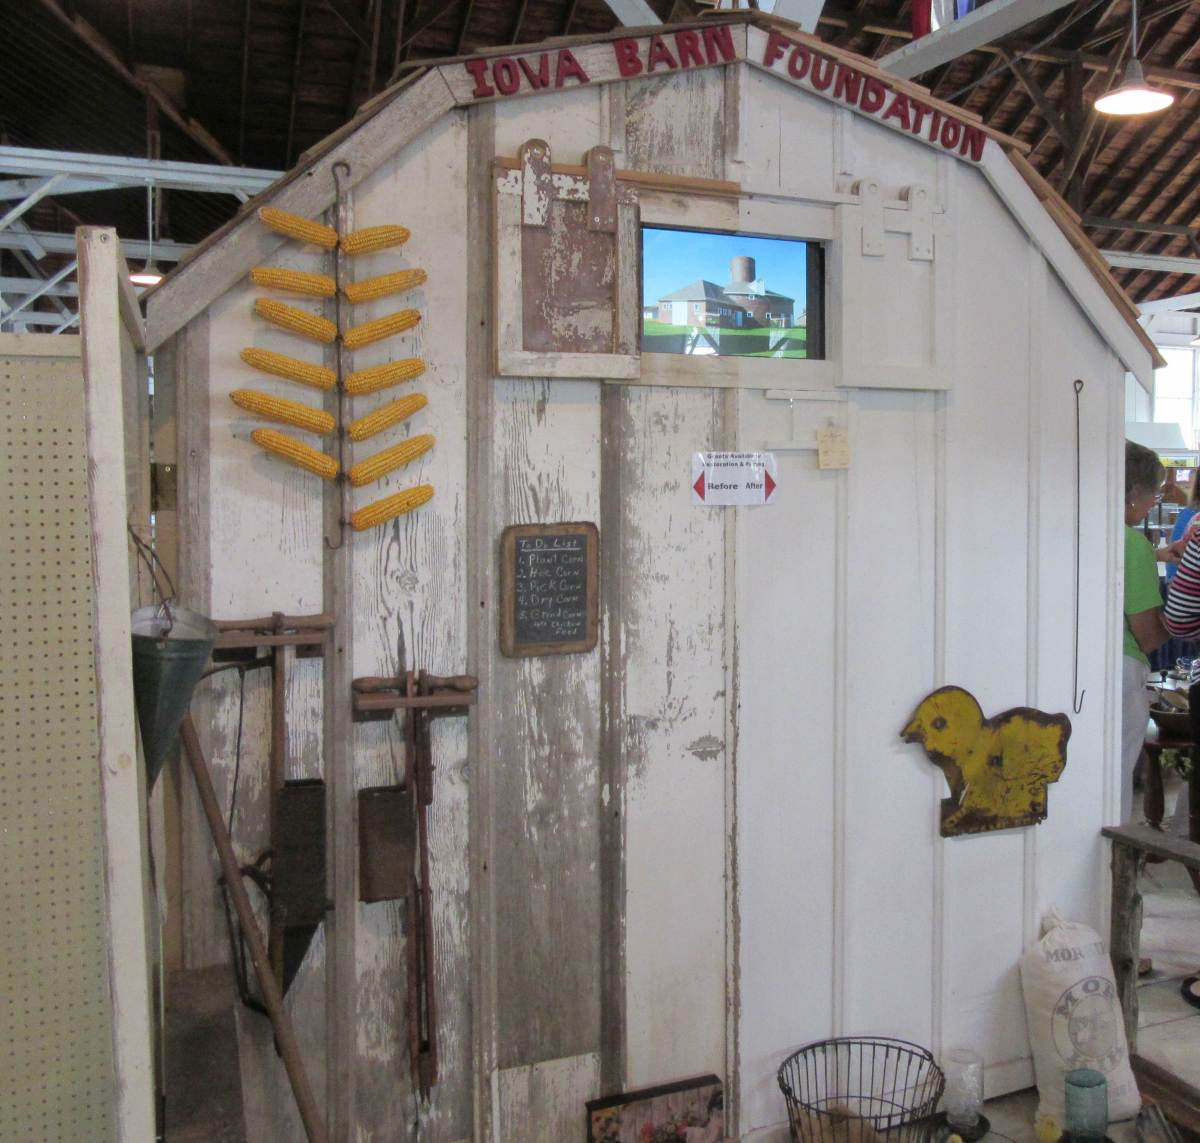 Iowa State Fair Booth